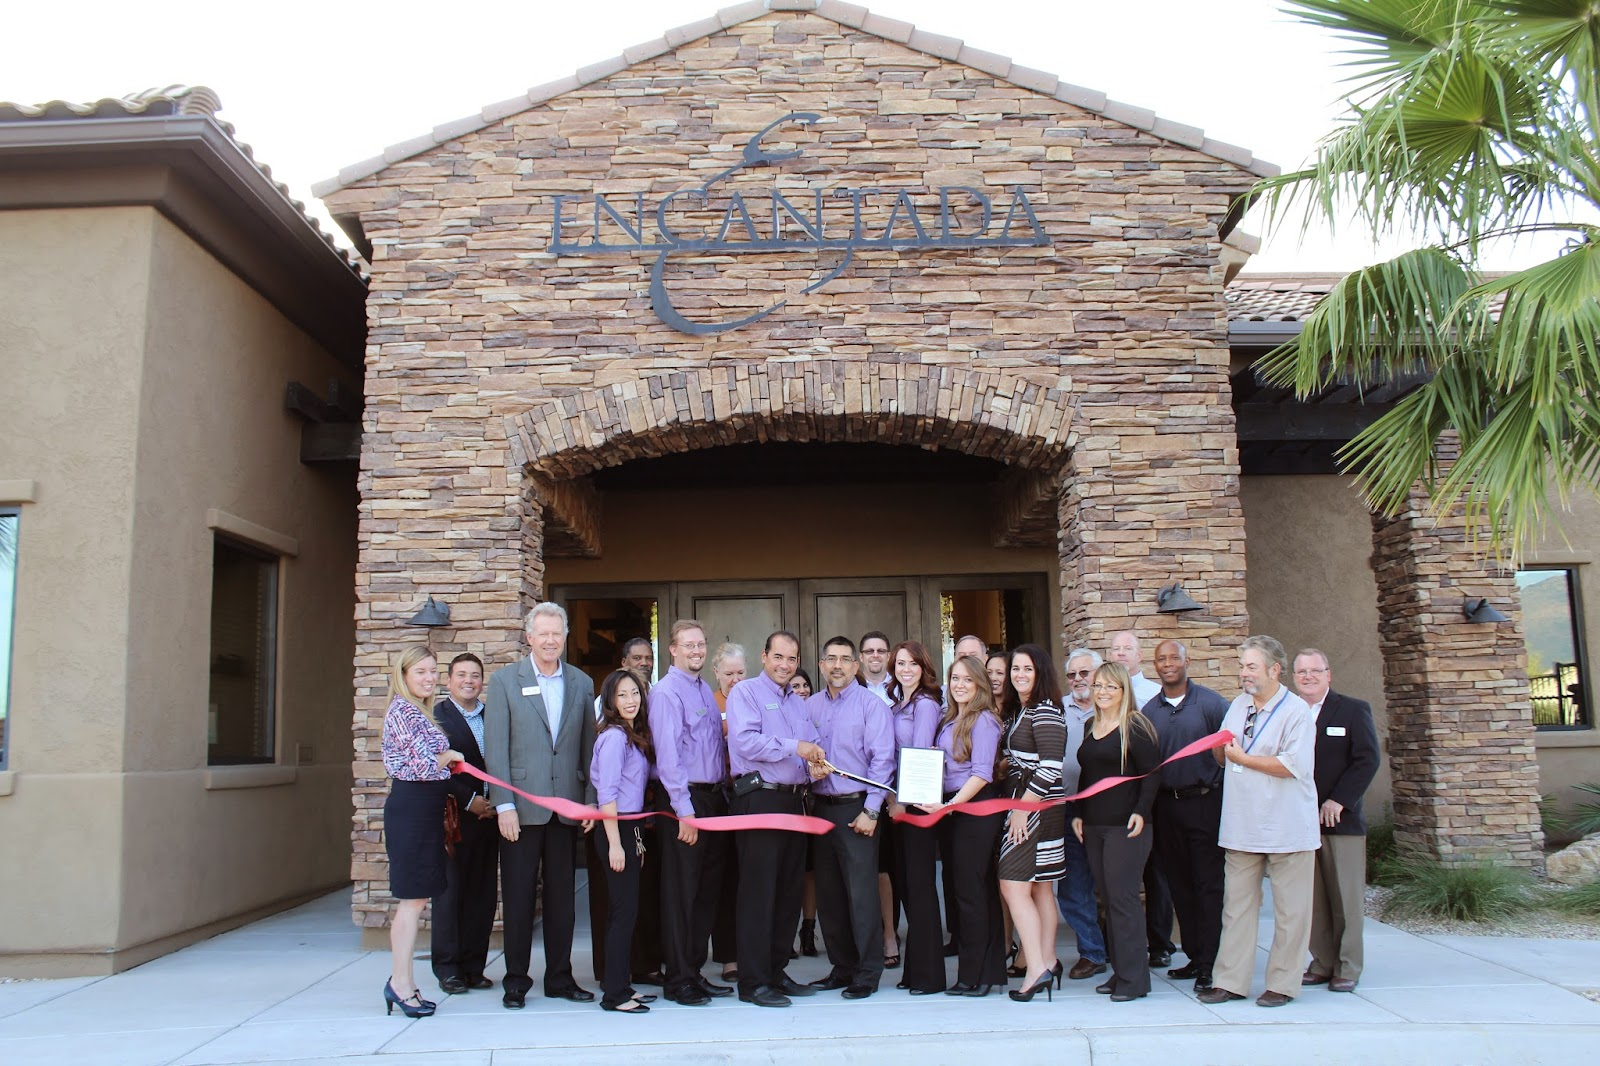 Thank you for helping us to commemorate the three year anniversary of Encantada at Riverside Crossing.